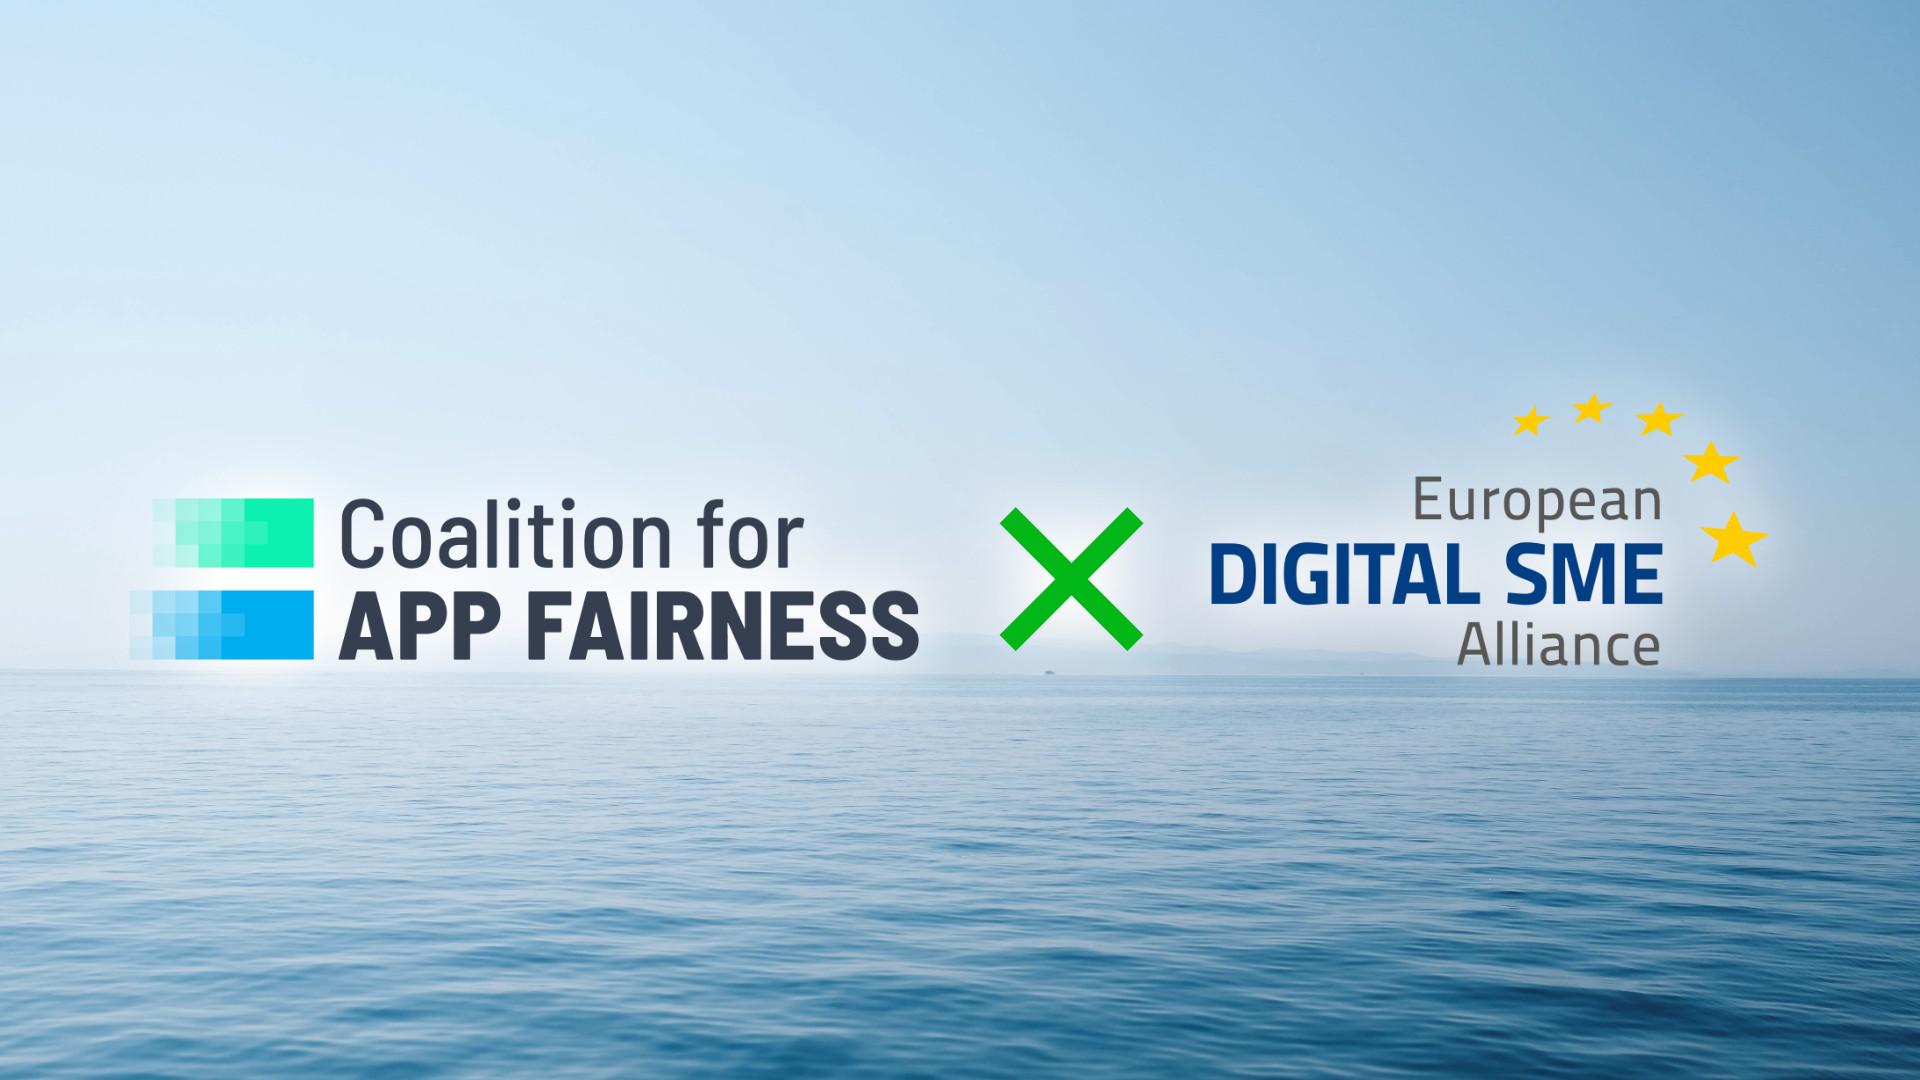 DIGITAL SME and Coalition for App Fairness partner to support an open and competitive app marketplace